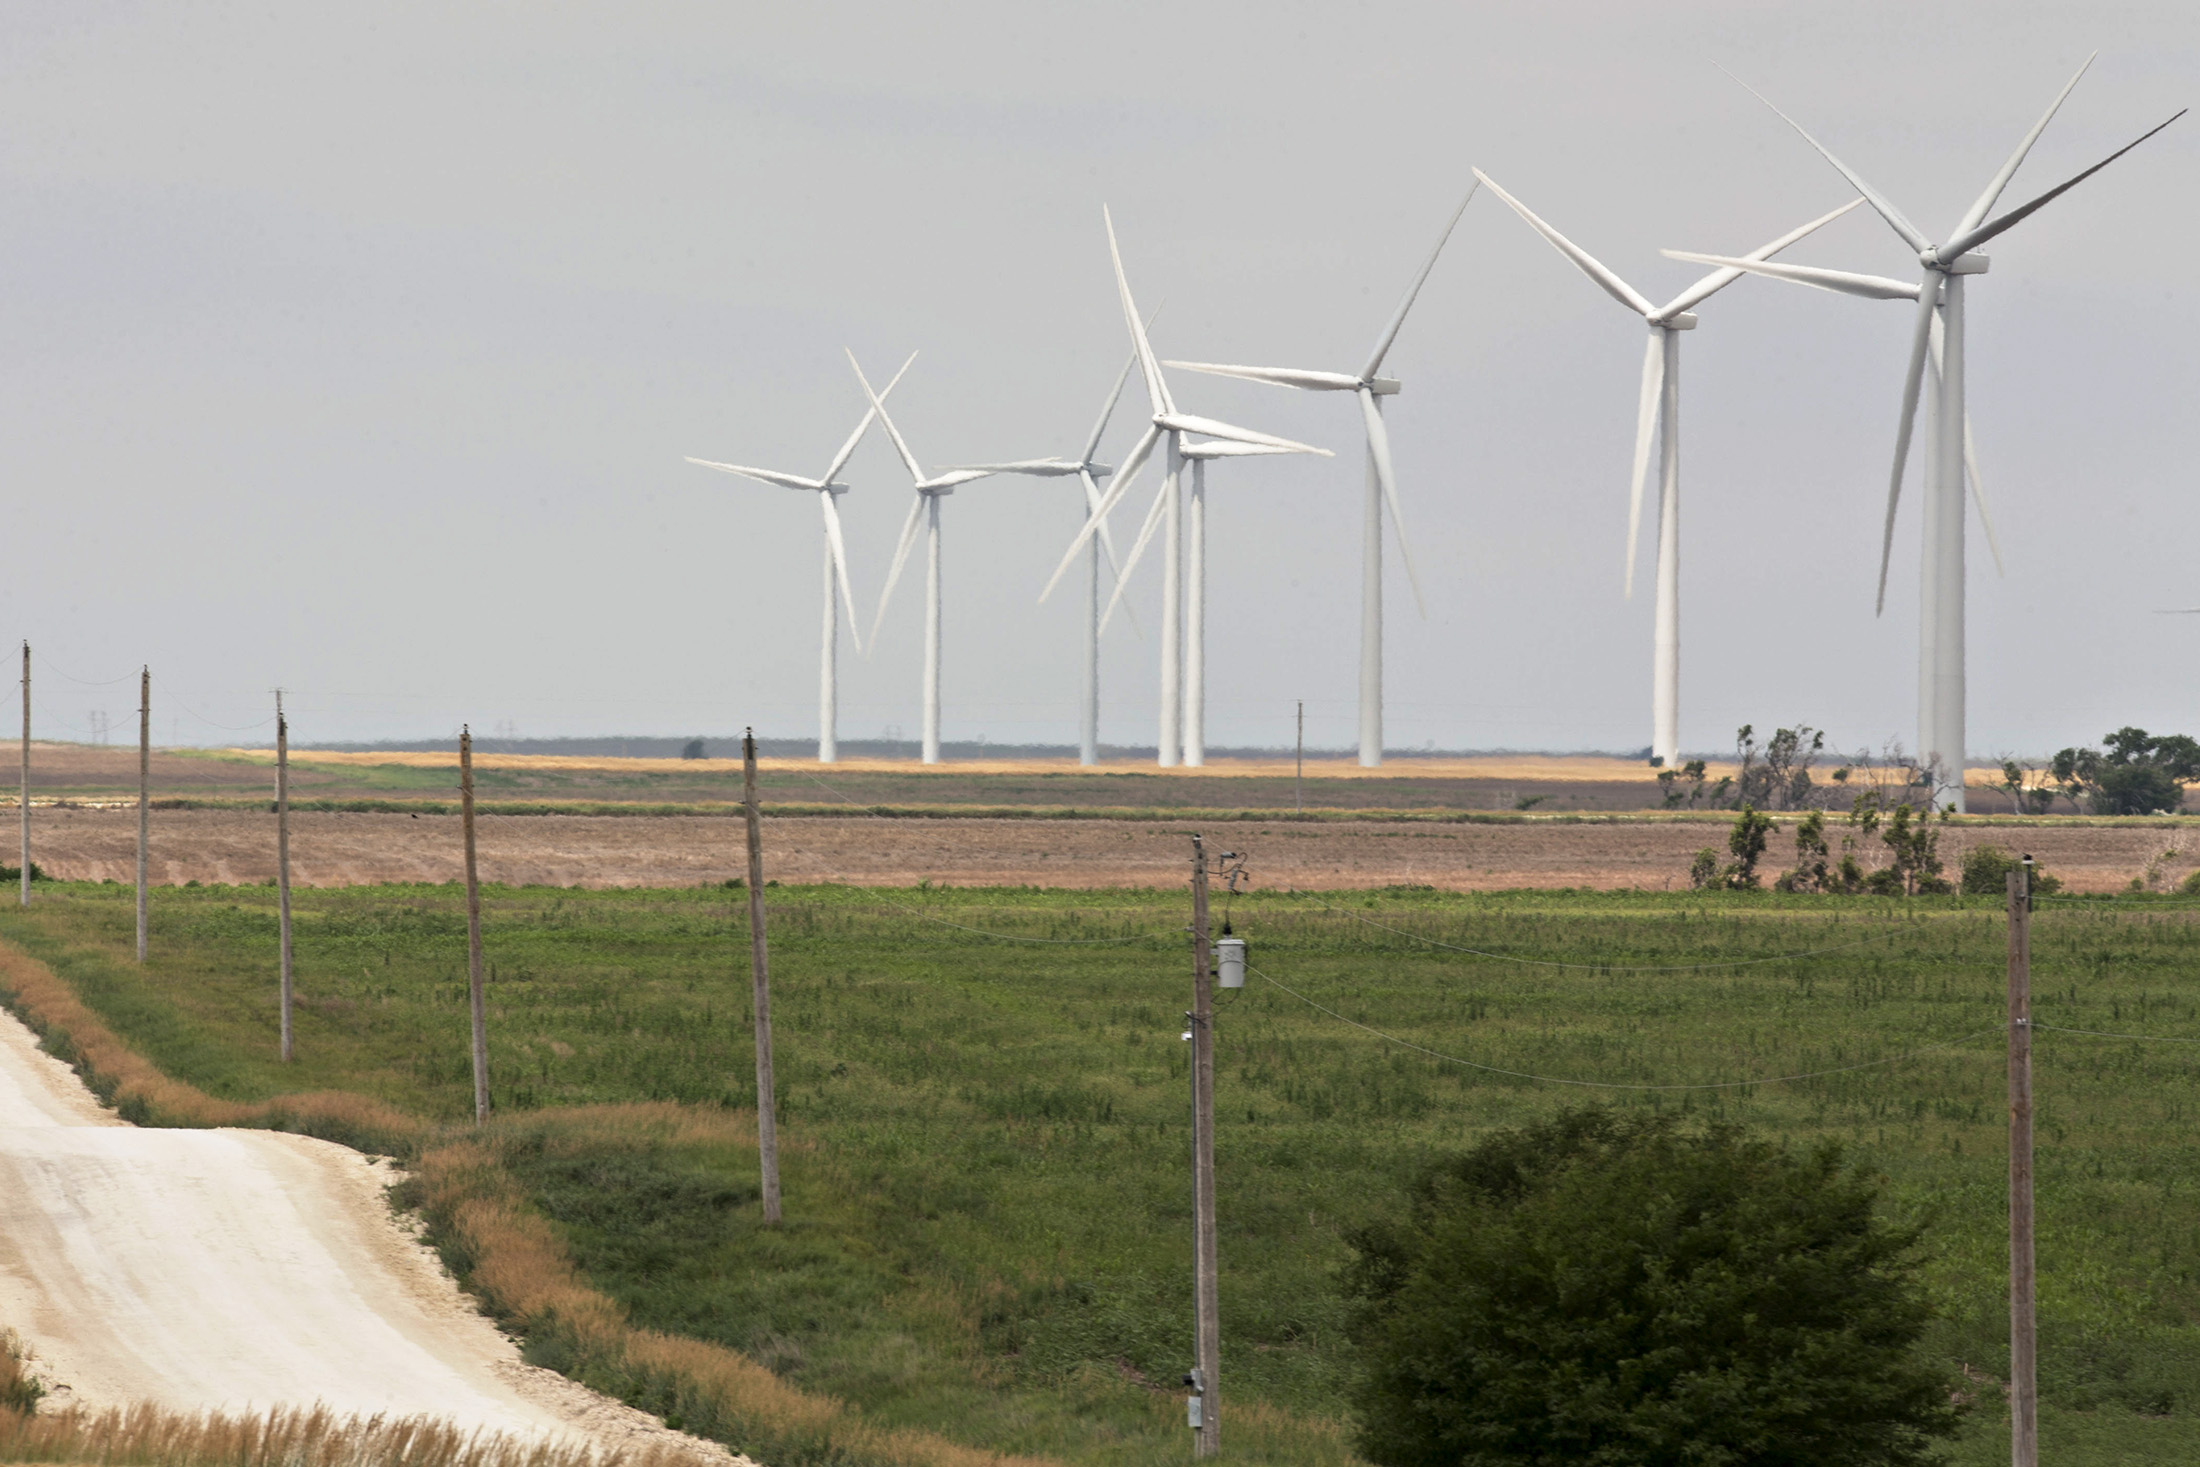 Missouri Nixes $2.5 Billion Line to Bring Wind Power to the Midwest